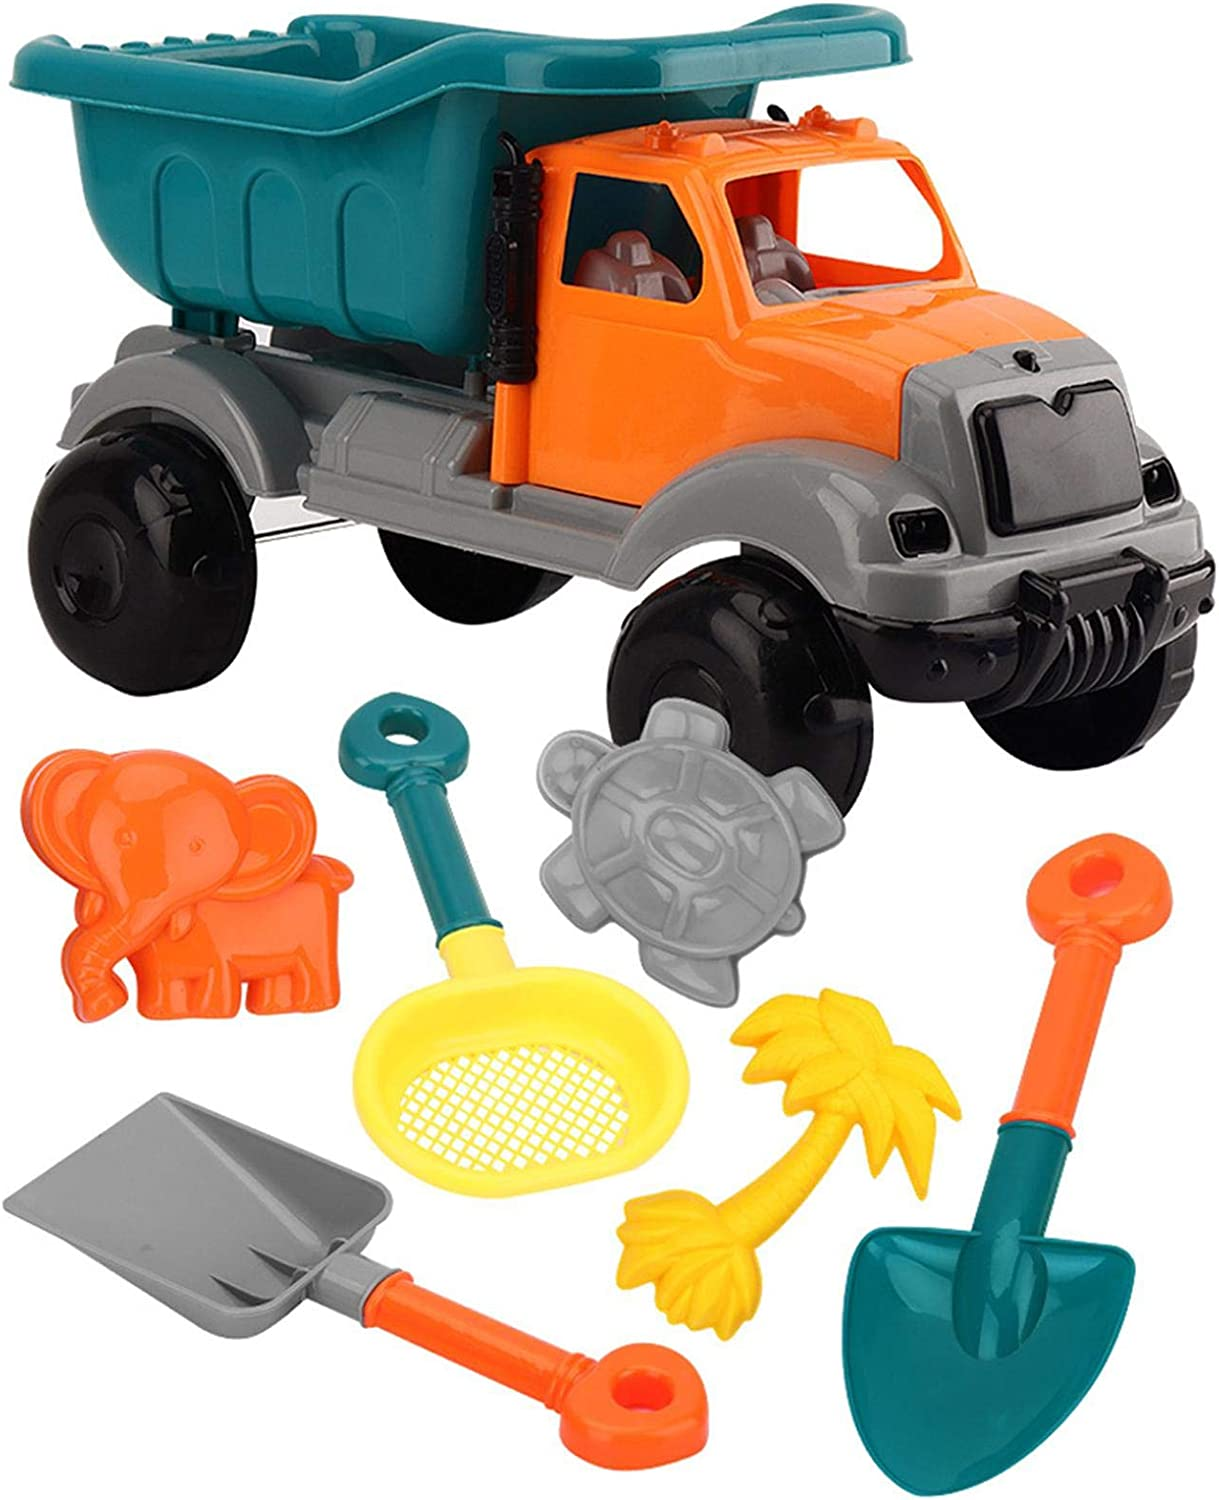 8PCS Super popular specialty store Beach Toys Children's Sand with Max 42% OFF Fun Bugg Truck